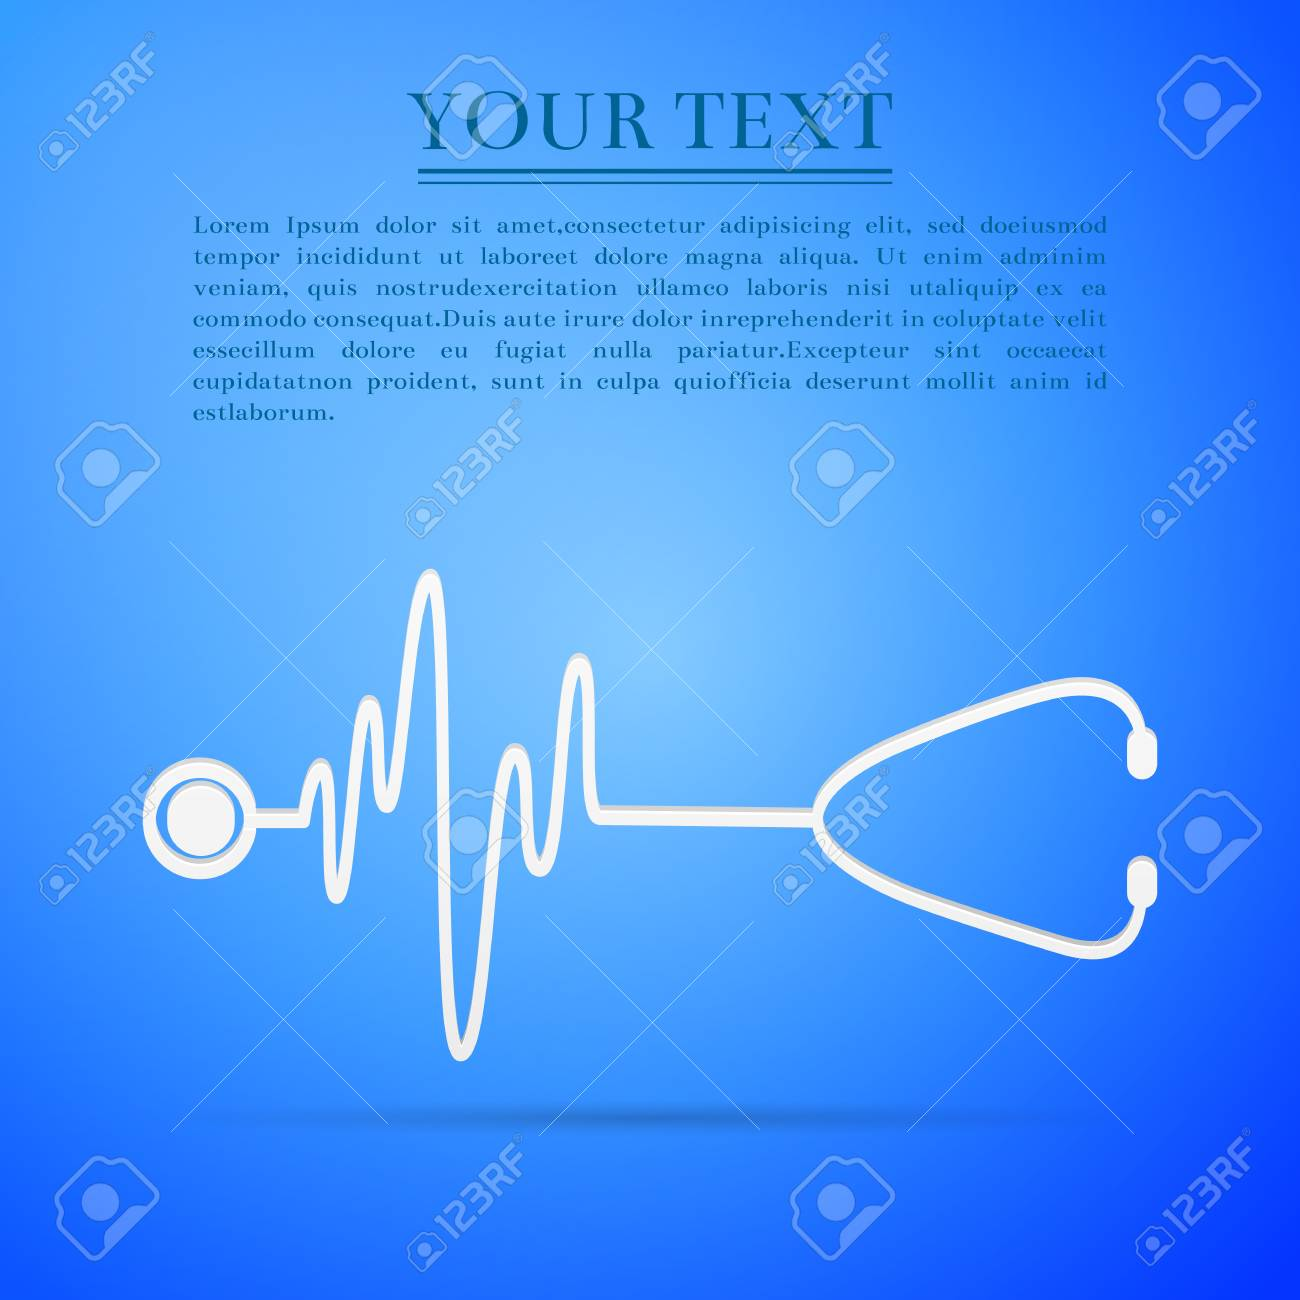 Stethoscope with a heart beat flat icon on blue background. - 68091675